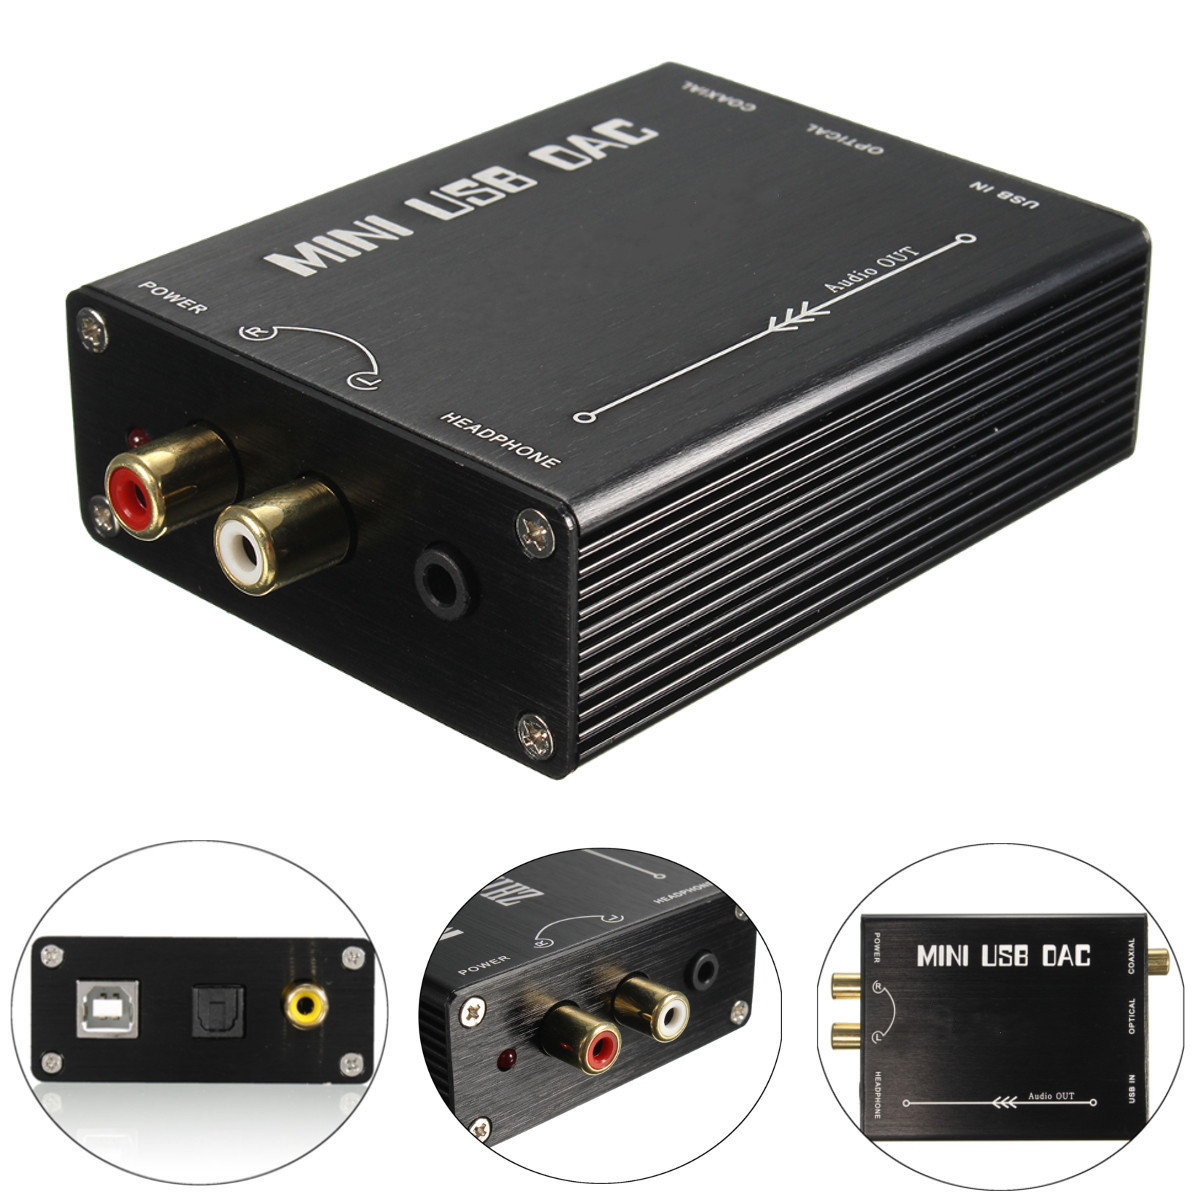 Avencore Usb Powered 3 Port Toslink Switch With Remote 3x1 Optical Switch together with Tanix TX3 Pro Android 6 0 Marshmallow Amlogic S905X TV BOX 369442 furthermore HIFI USB To SPDIF Converter DAC Decoder PCM2704 Optical Coaxial Sound Card P 1115072 furthermore Avsc Video Hdmi besides Unuiga Mxq R9 Another Android Tv Box Powered By New Rockchip Rk3229. on usb to spdif cable